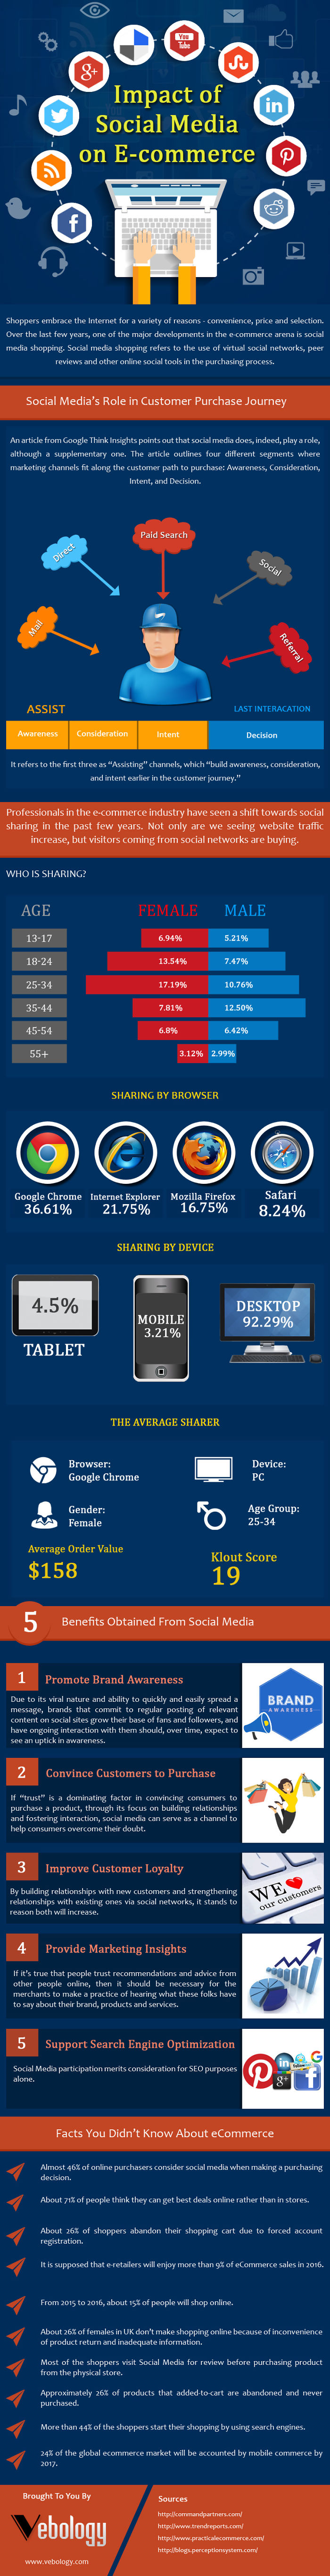 Impact Of Social Media On Ecommerce [infographic]